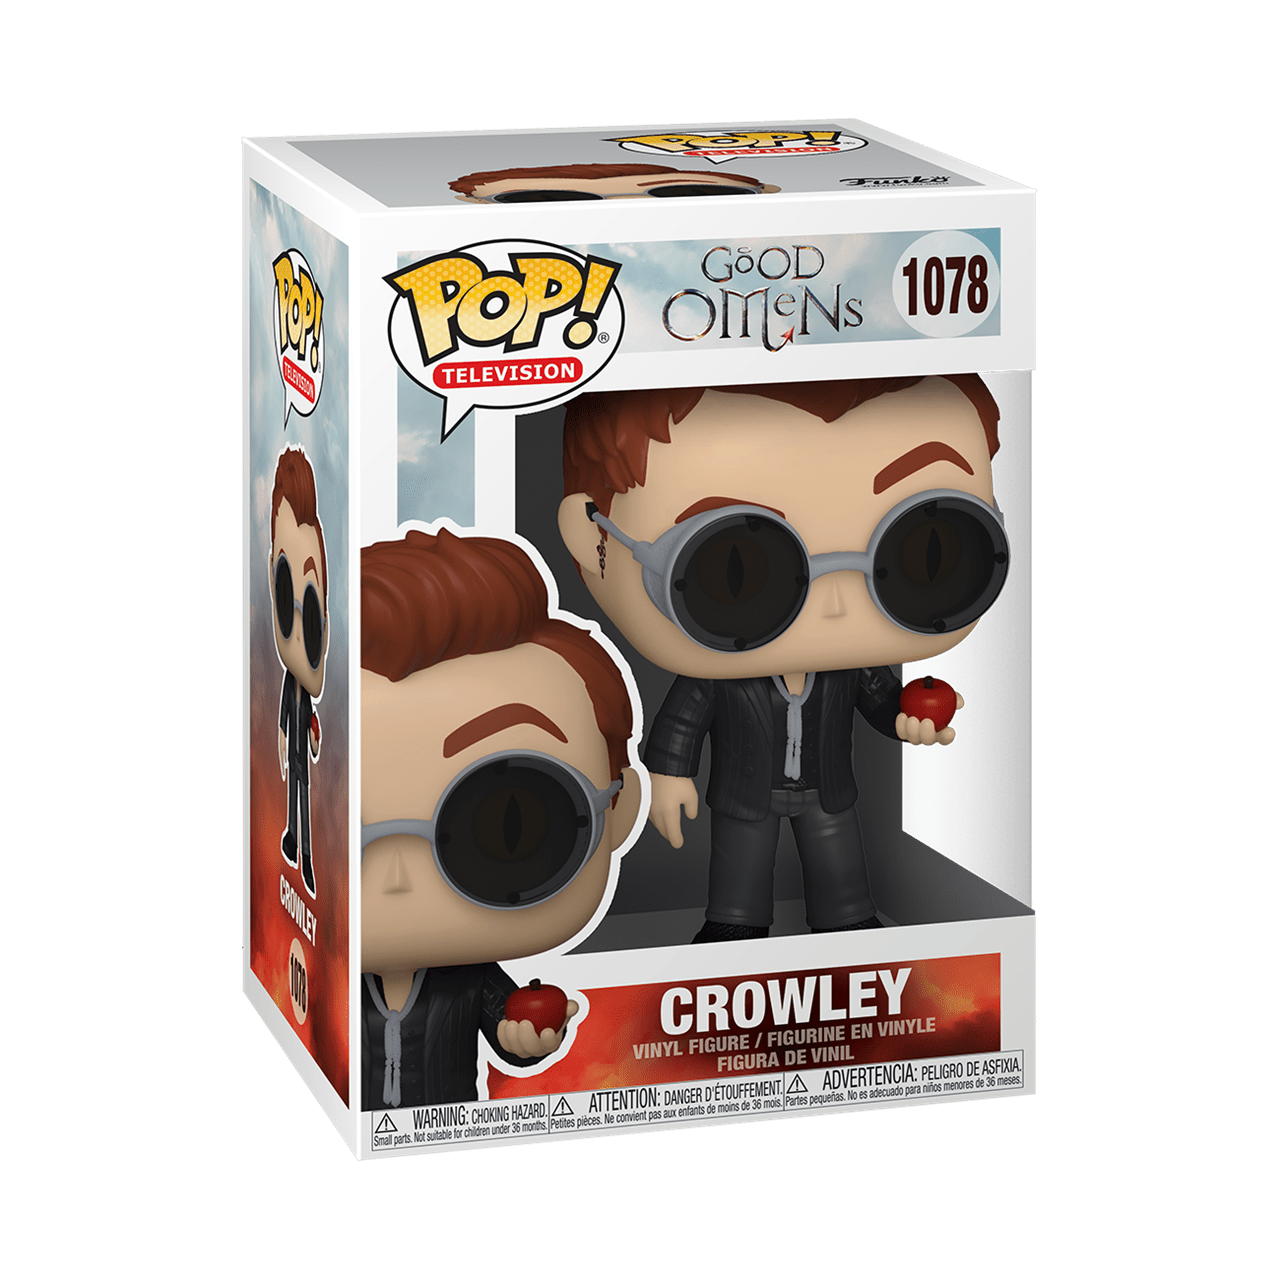 Crowley With Apple (1078) Good Omens Pop Vinyl (with Ice Pop Chase) - 2